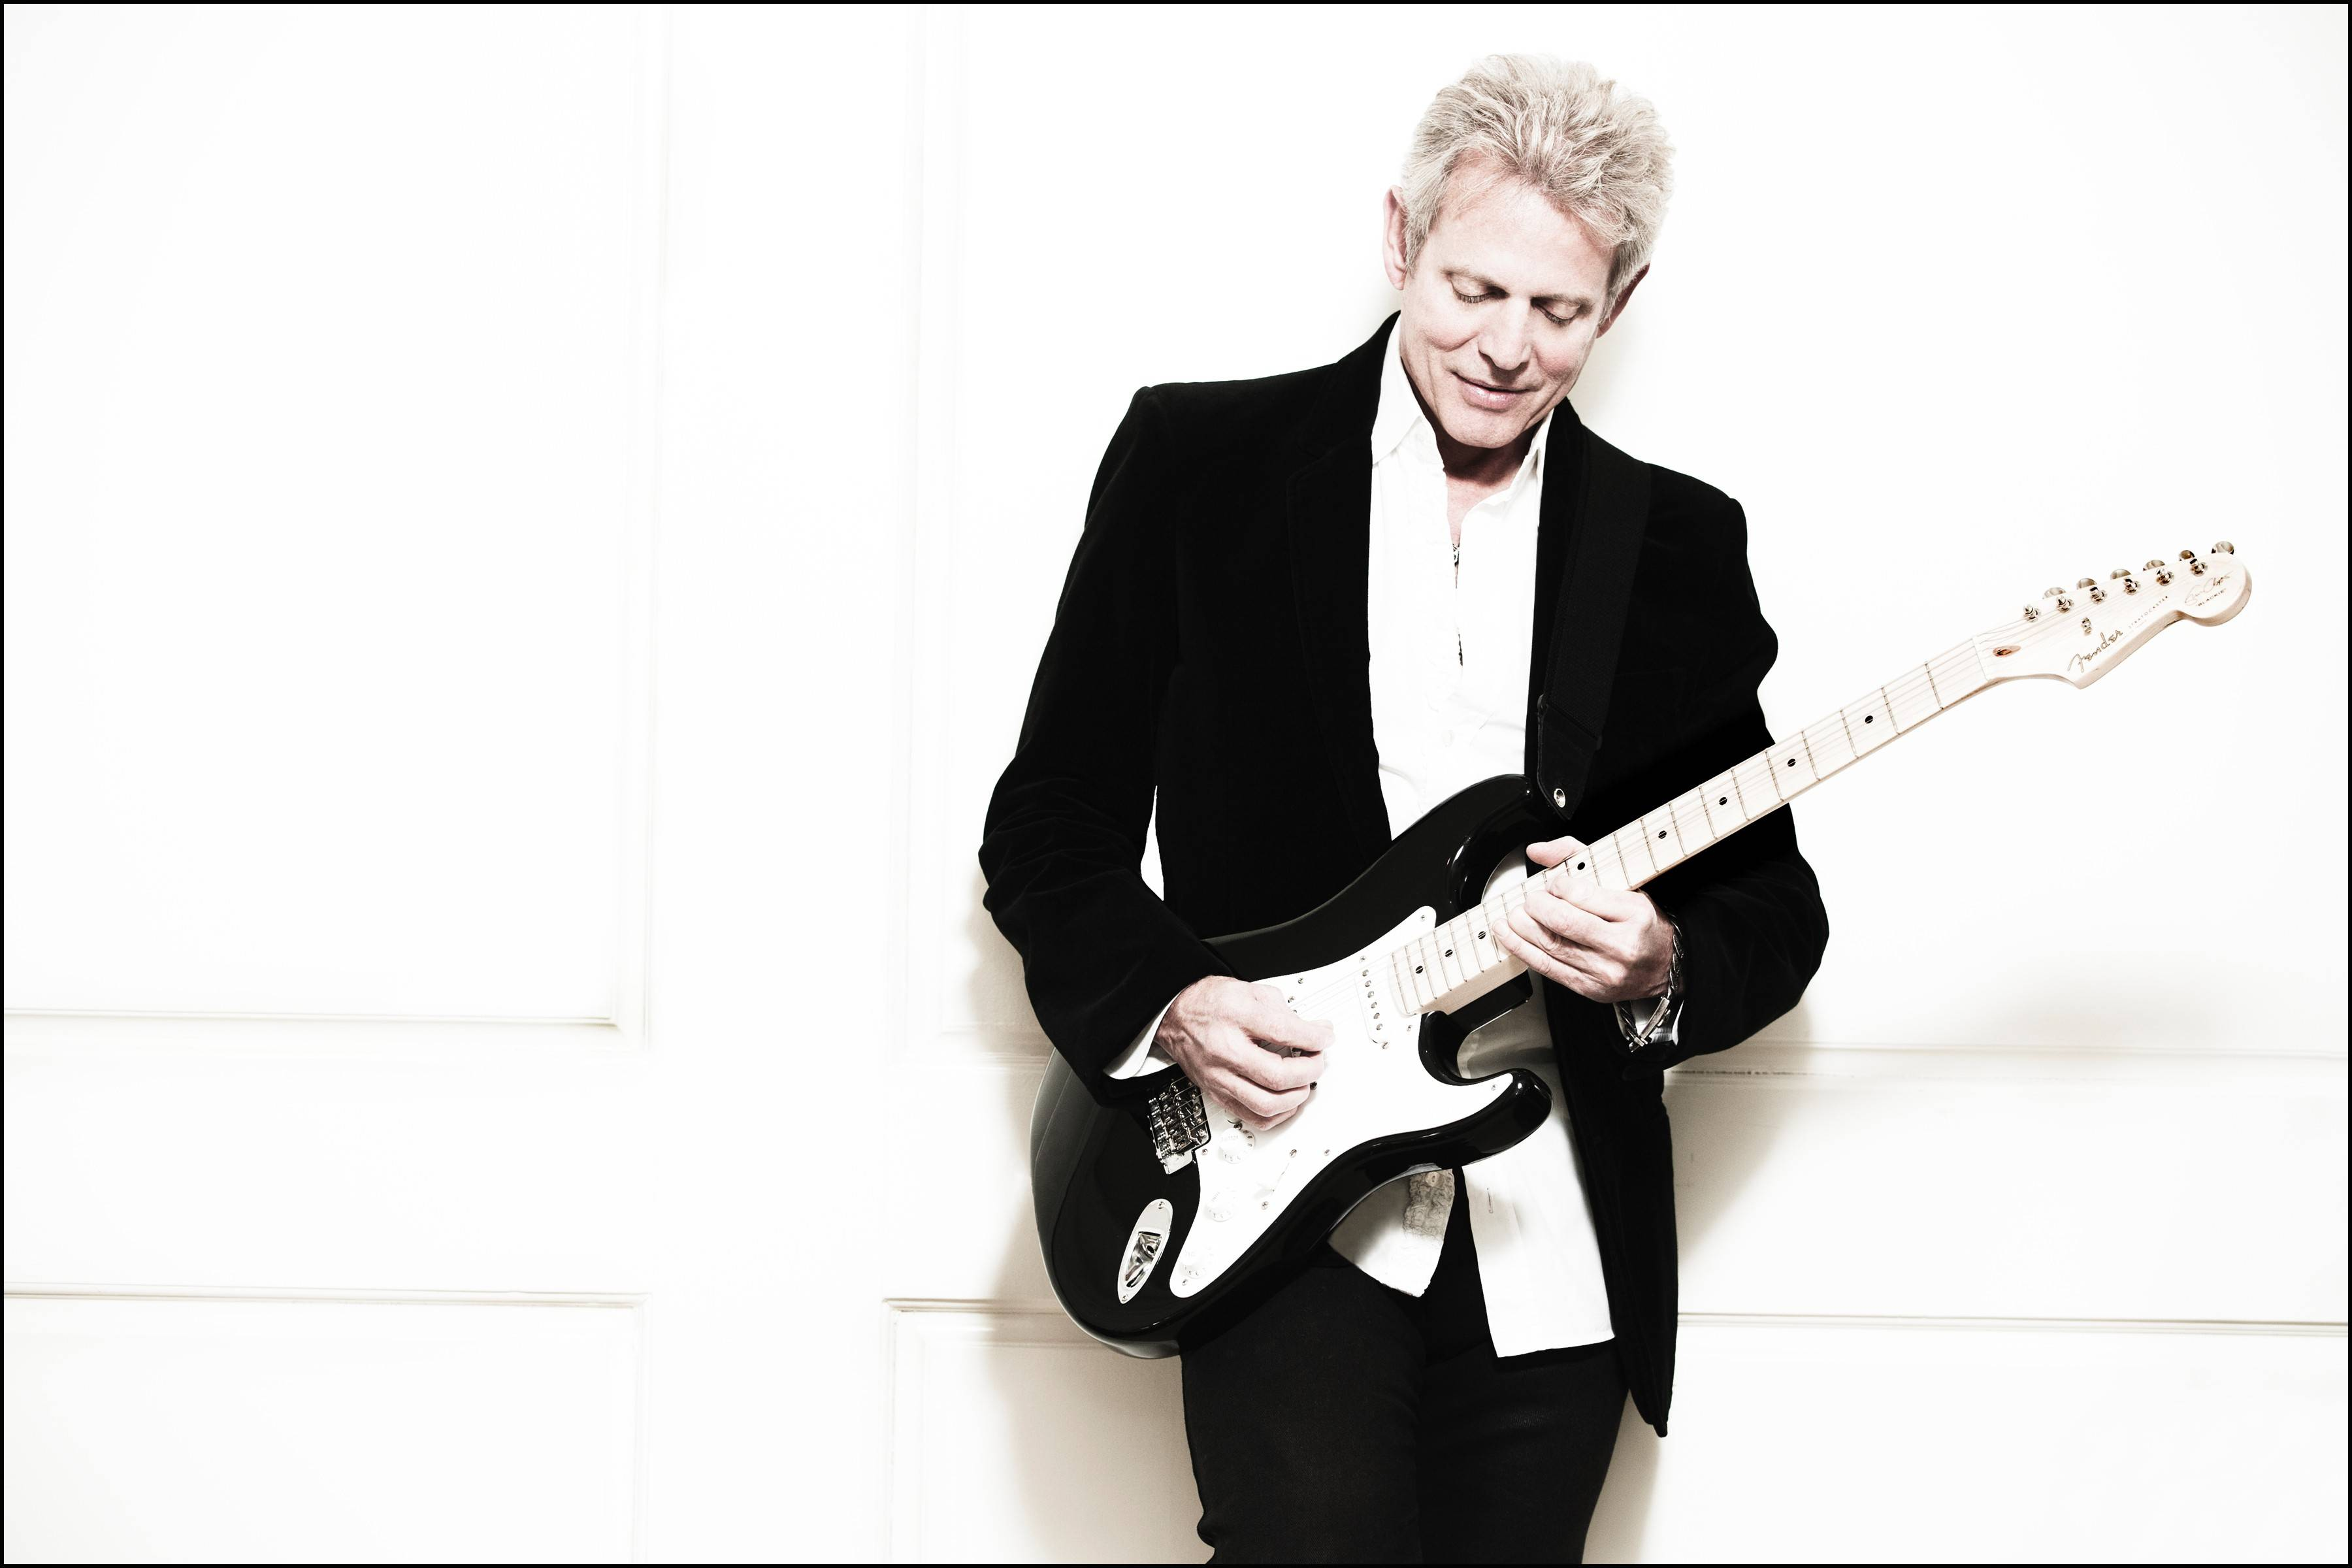 Don Felder of The Eagles will perform at the Arcada Theatre in St. Charles.